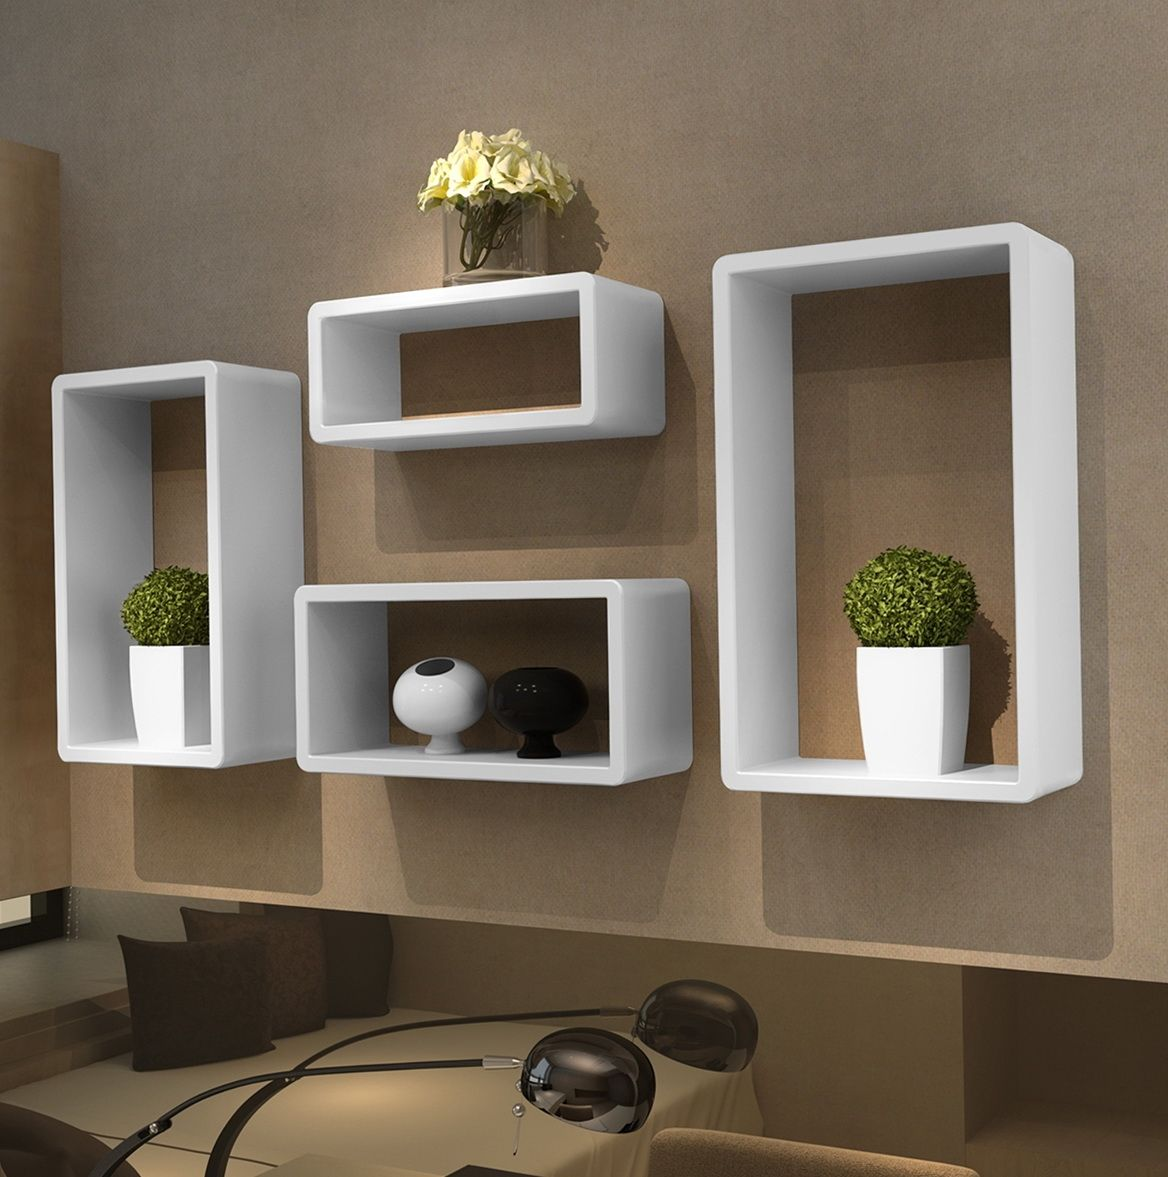 Wall Shelves Ikea With Regard To Inviting Floating Cube Shelves Wall Shelves Design Wooden Wall Shelves